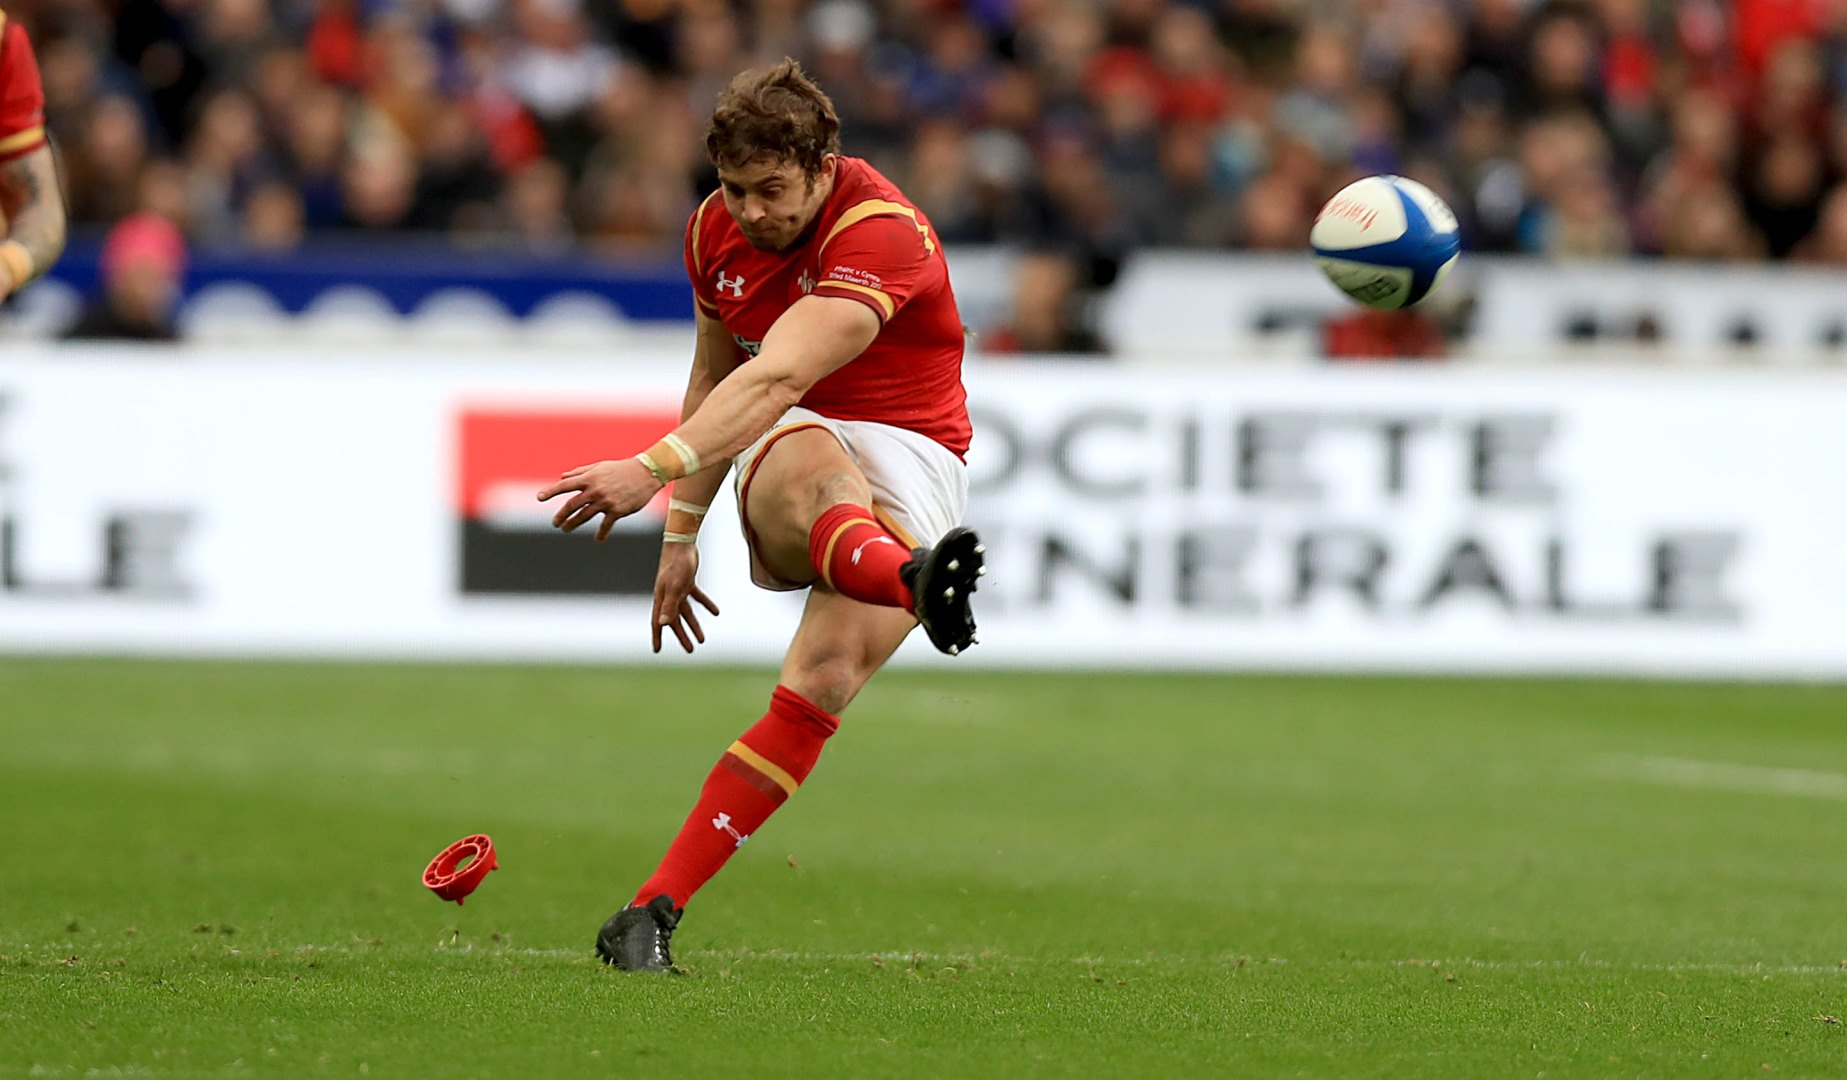 LionsWatch: Halfpenny shines as Wales fall just short